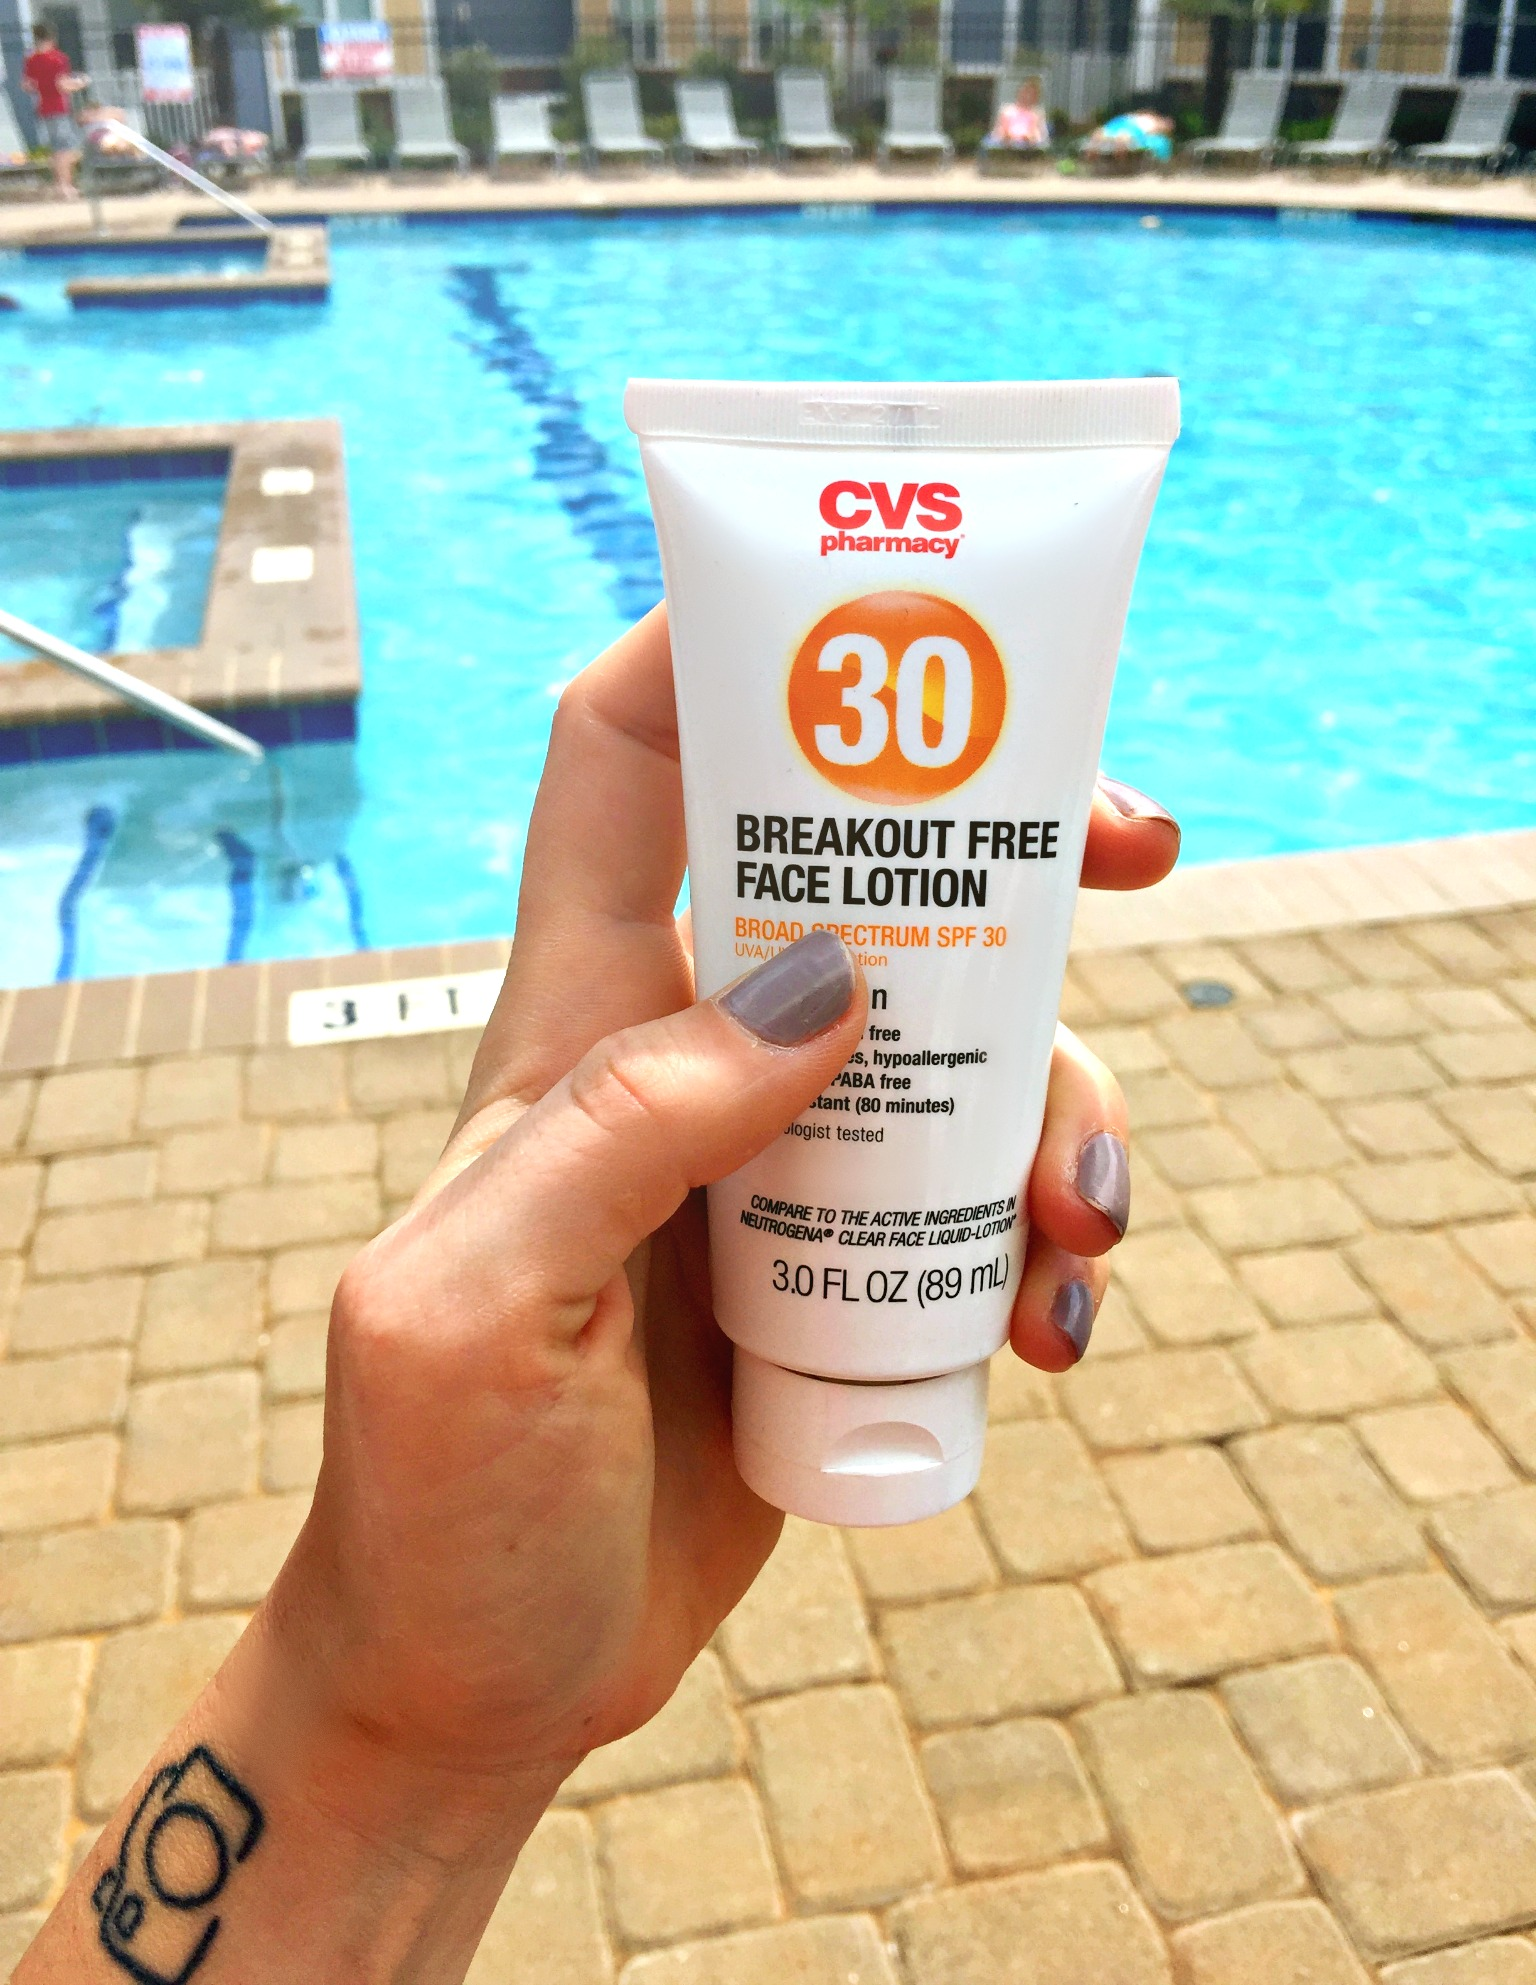 CVS BREAKOUT FREE FACE LOTION